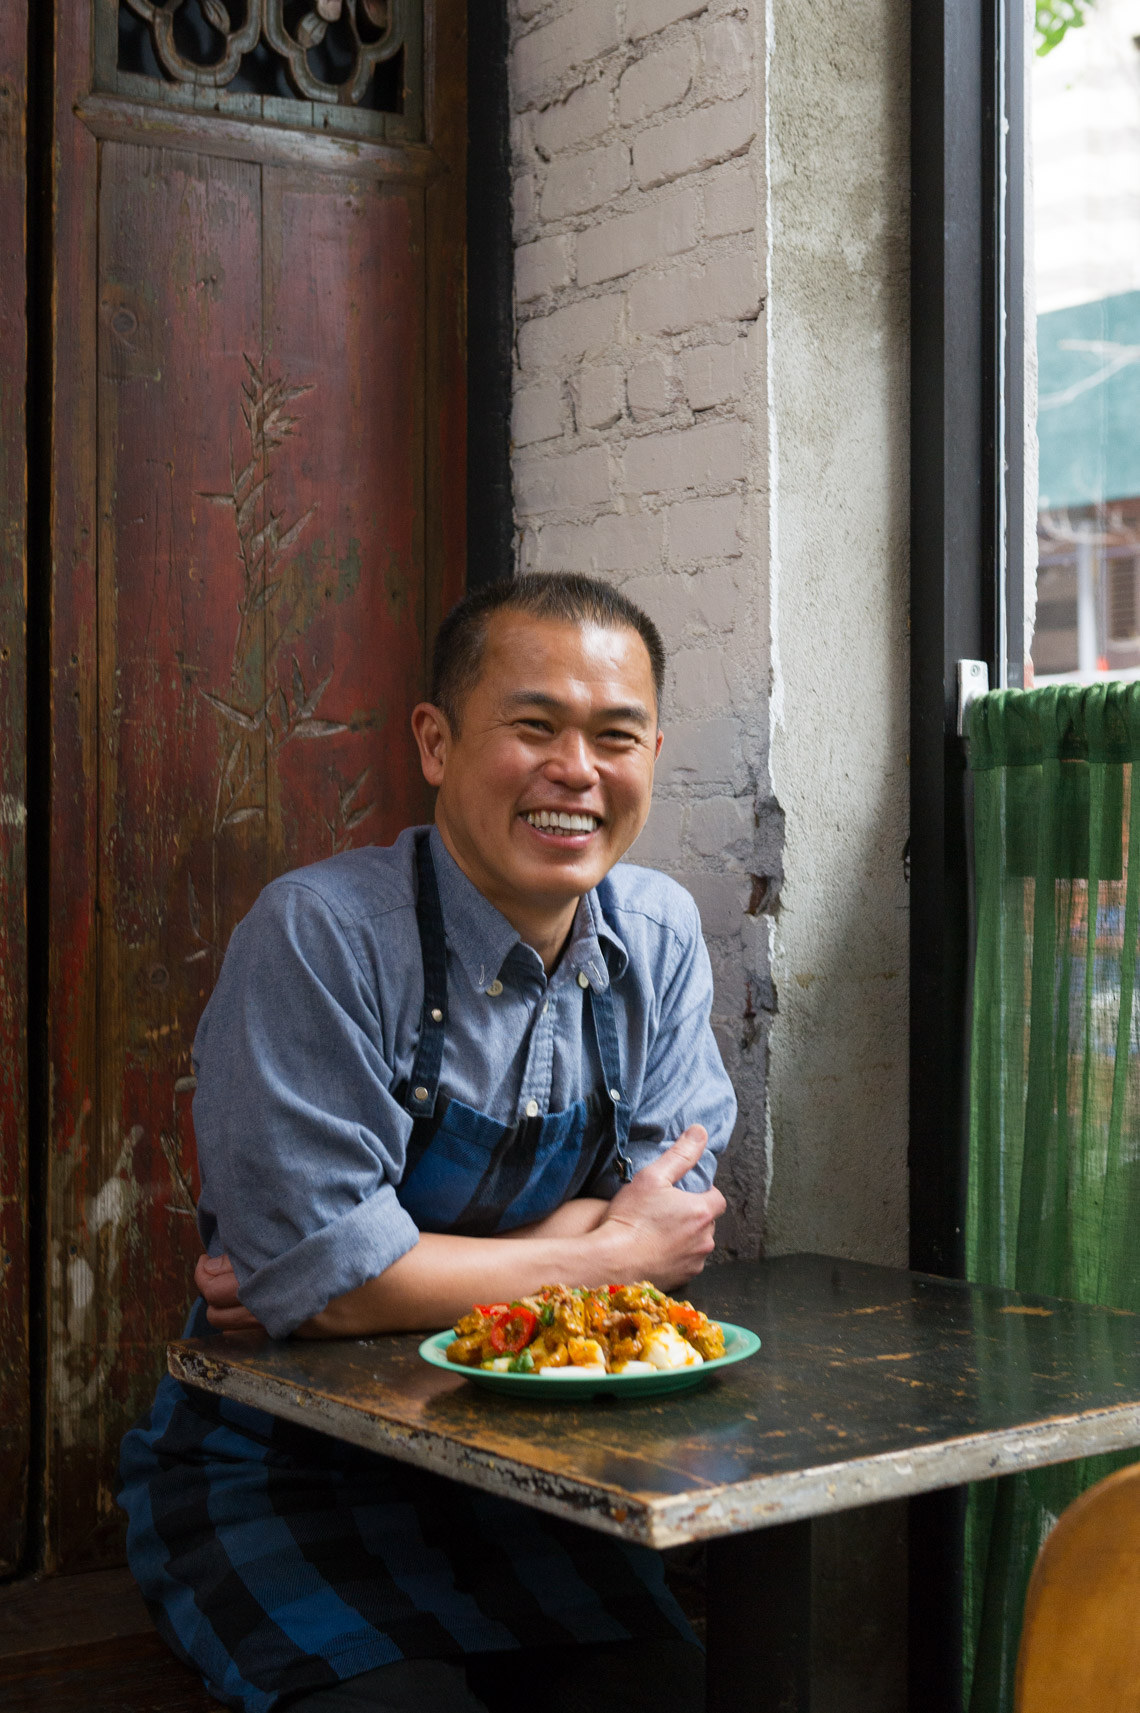 NYC Food Photographer - Simpson Wong